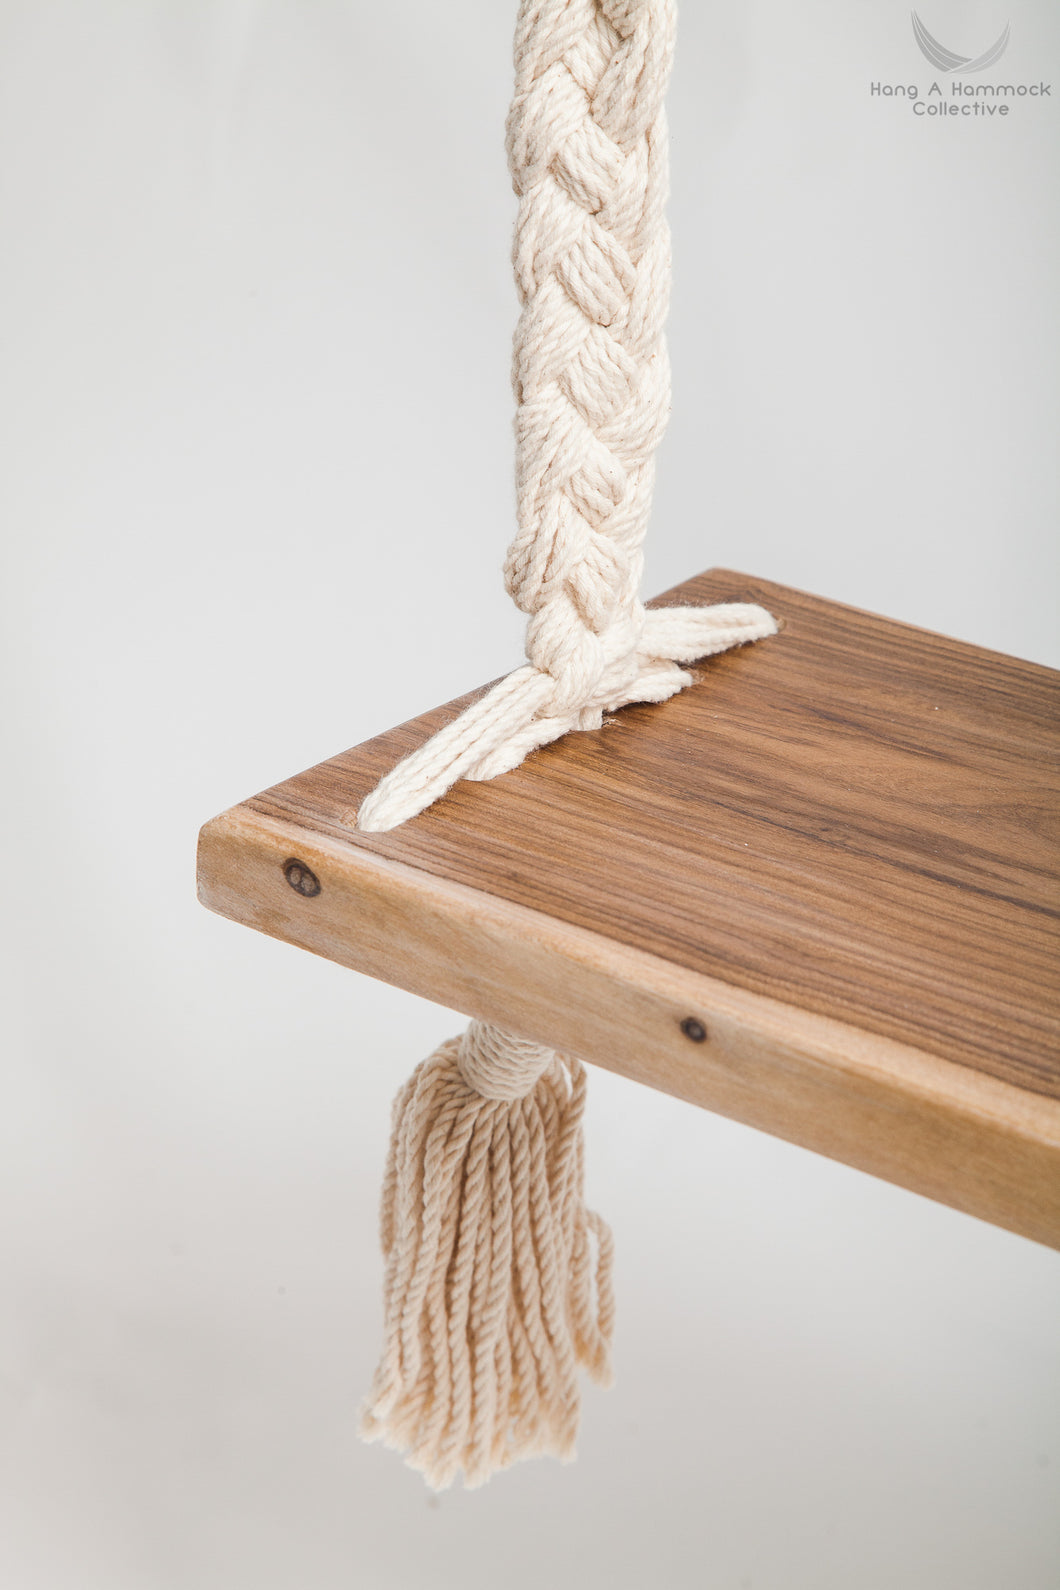 Braided Rope Swing - detail of the timber seat - professional picture - white background